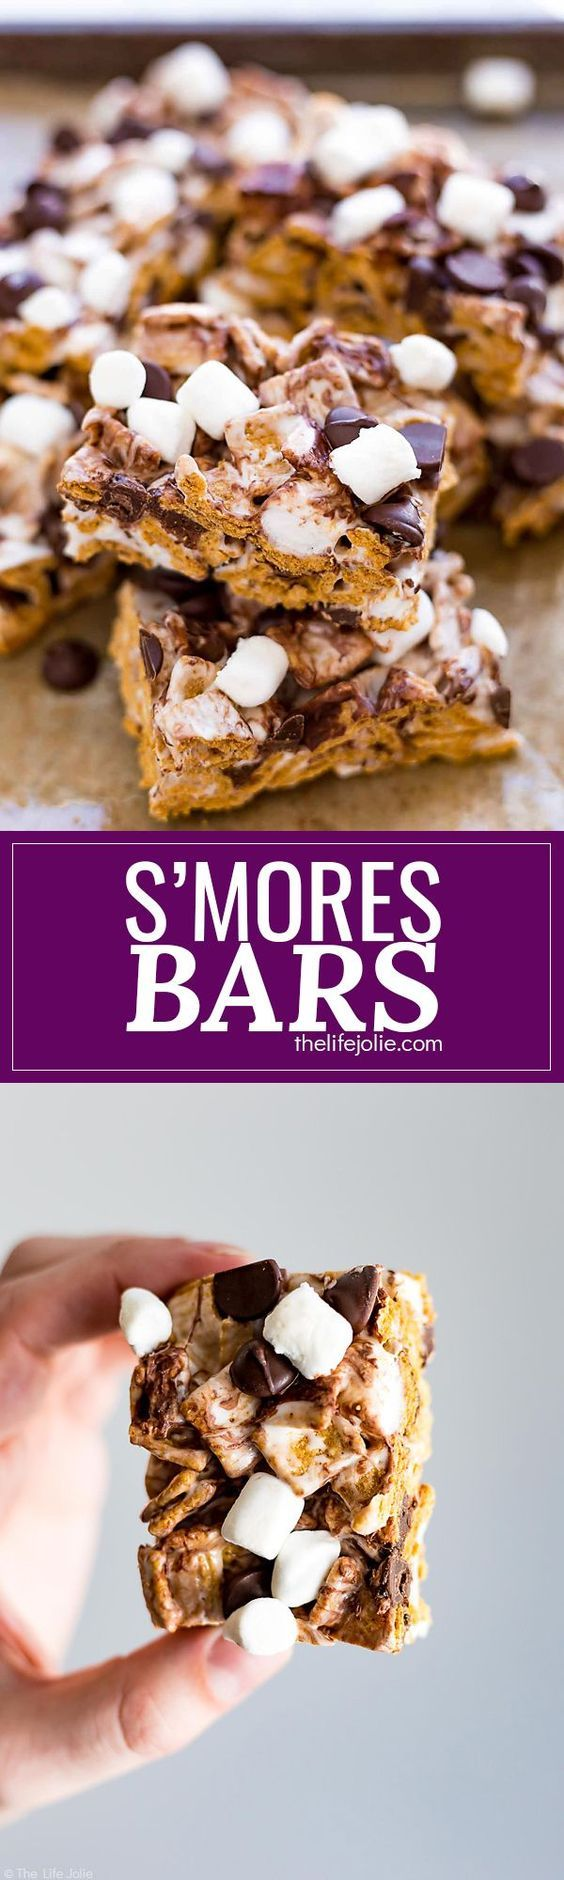 These No Bake Smores Bars are one of the best easy recipes to throw together for a last minute party or get together. Made with Golden Grahams, marshmallows and chocolate chips, these are a great no bake dessert option that both kids and adults will love this summer